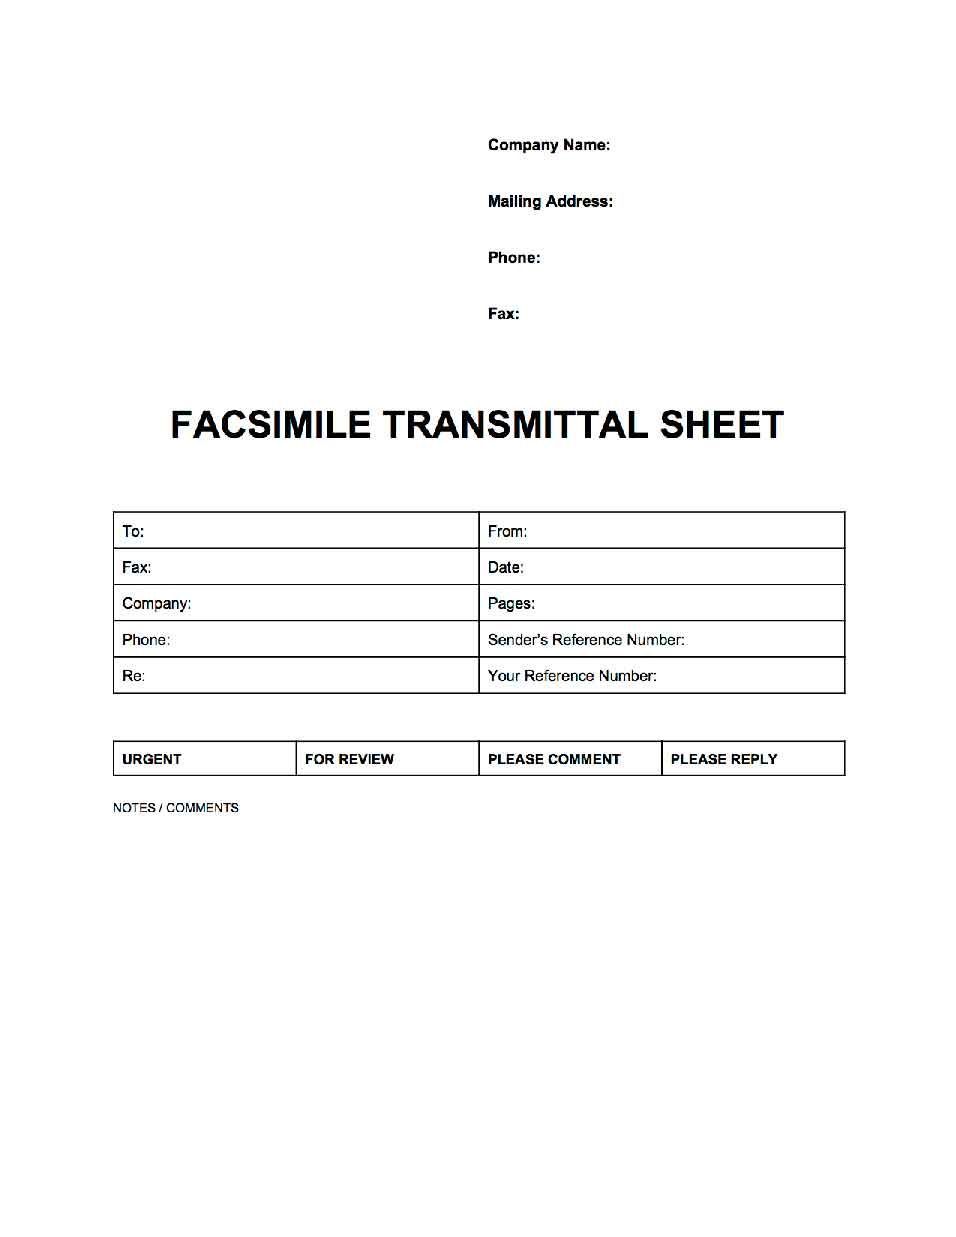 Fax Cover Sheets Templates Professional Fax Cover Sheet  Popularfaxcoversheets  Pinterest